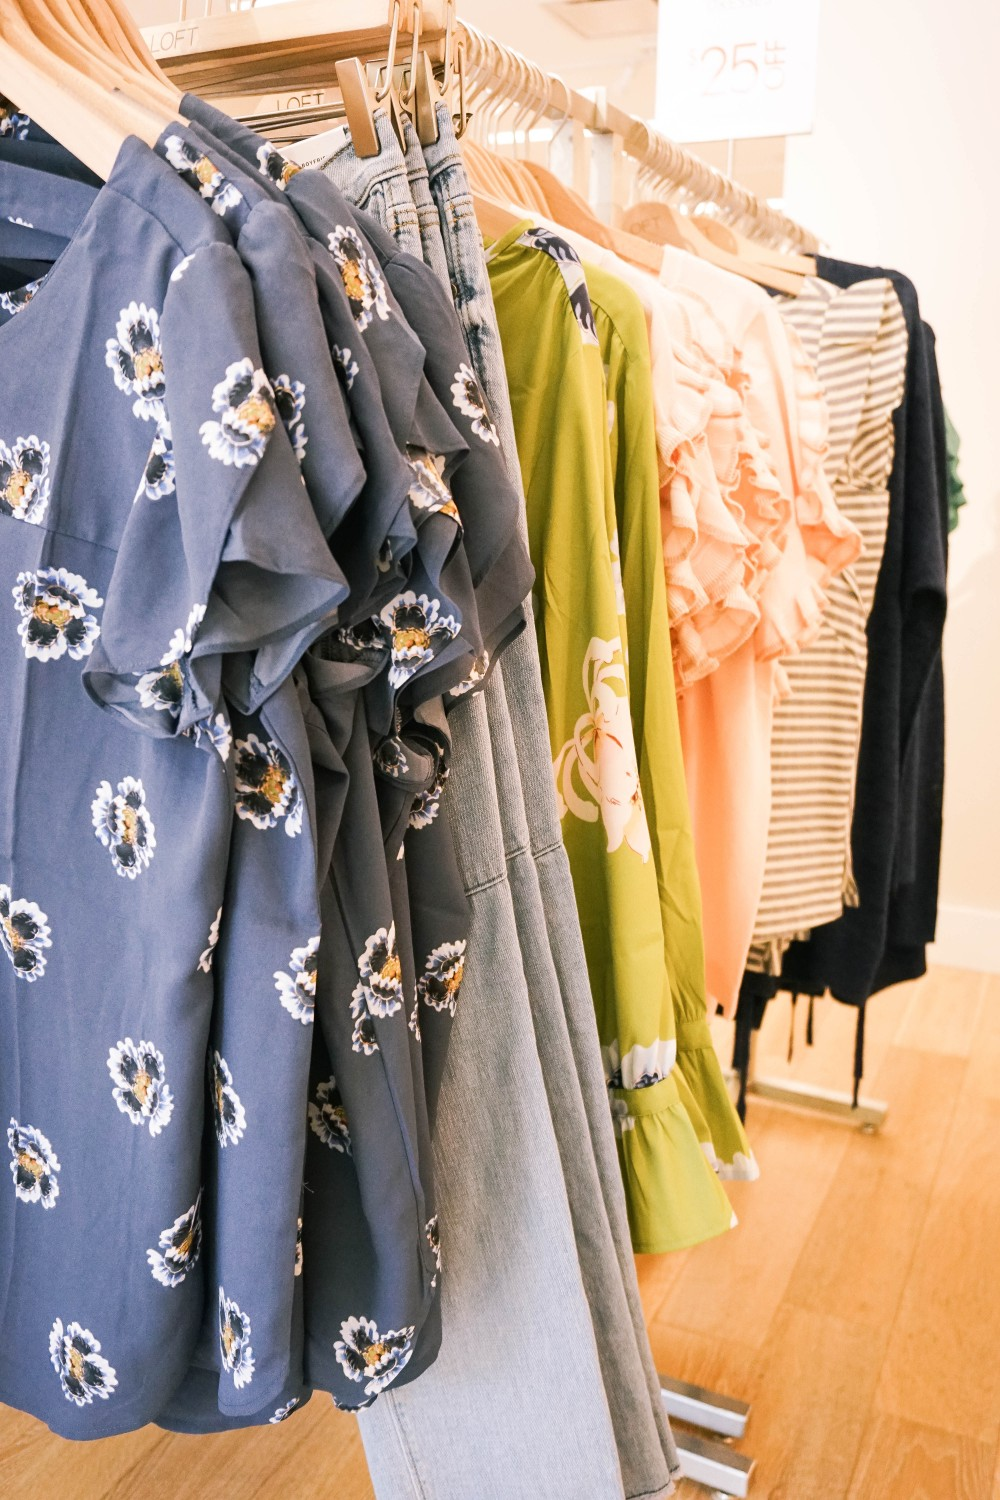 Back to School Shopping-Ann Taylor LOFT-Fall Floral Tops-Ruffle Sleeve Details